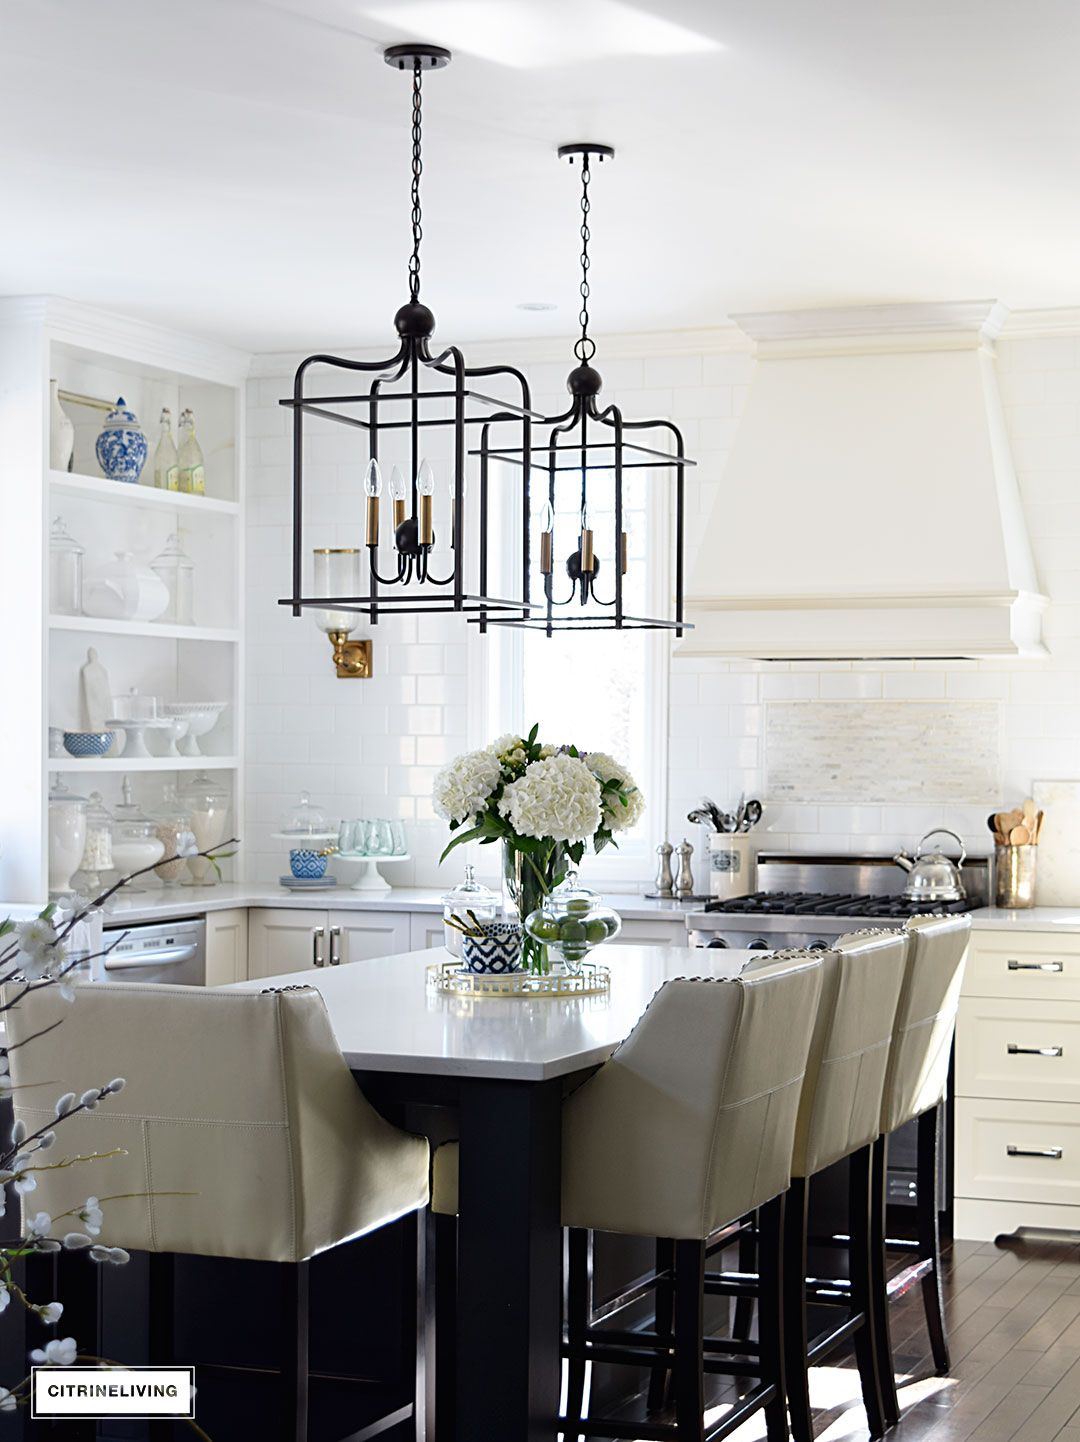 Spring in full swing home tour bright pendants and kitchens